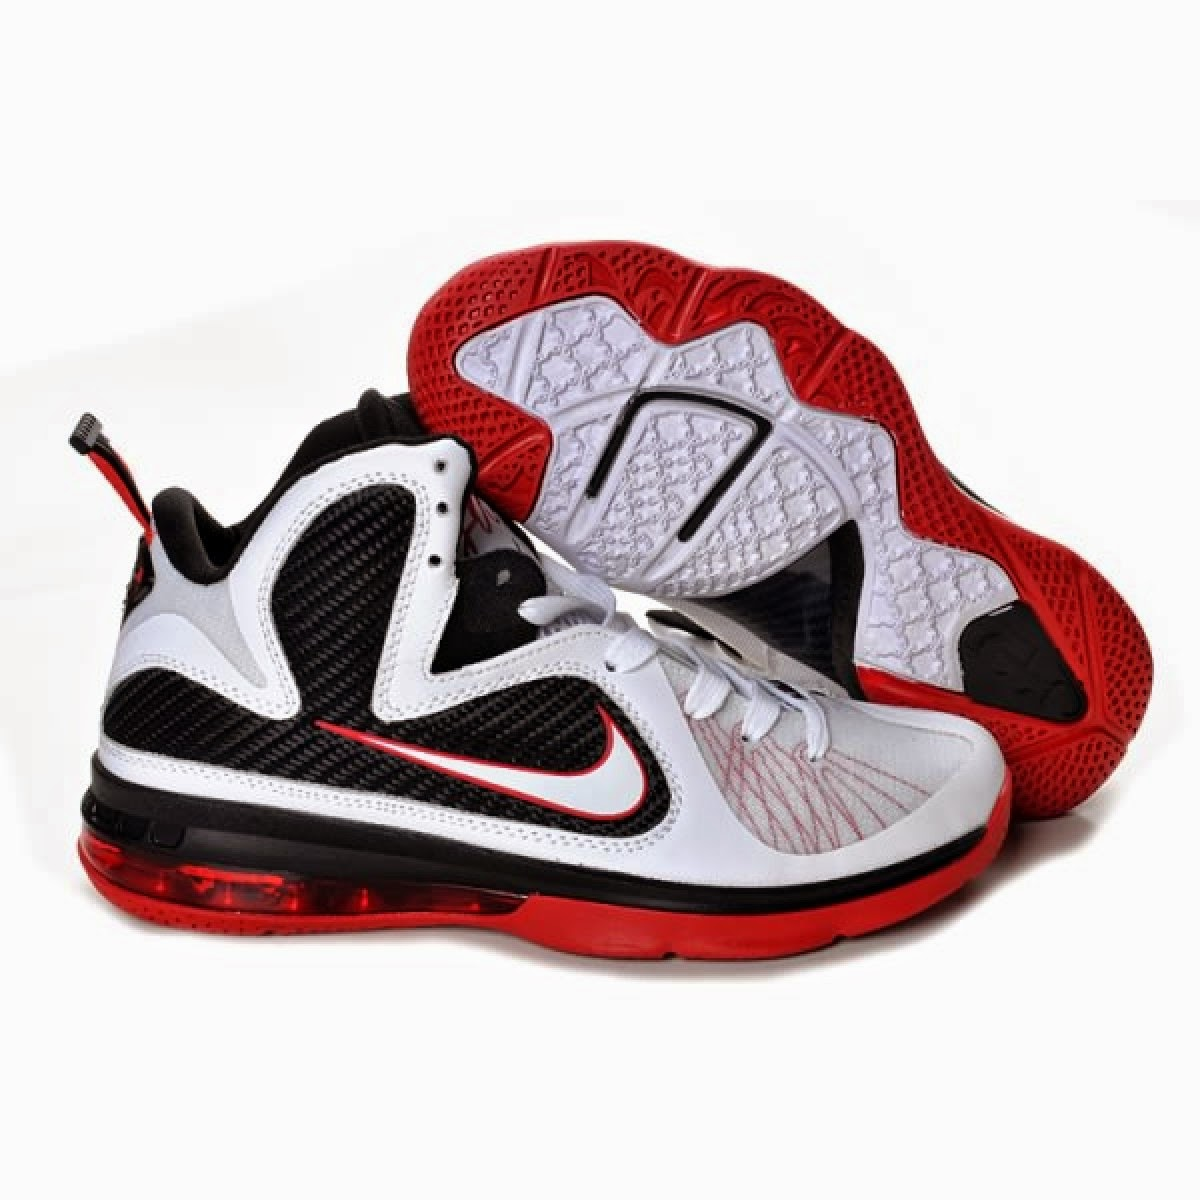 Nike Basketball Shoes Red And Black   Viewing Gallery